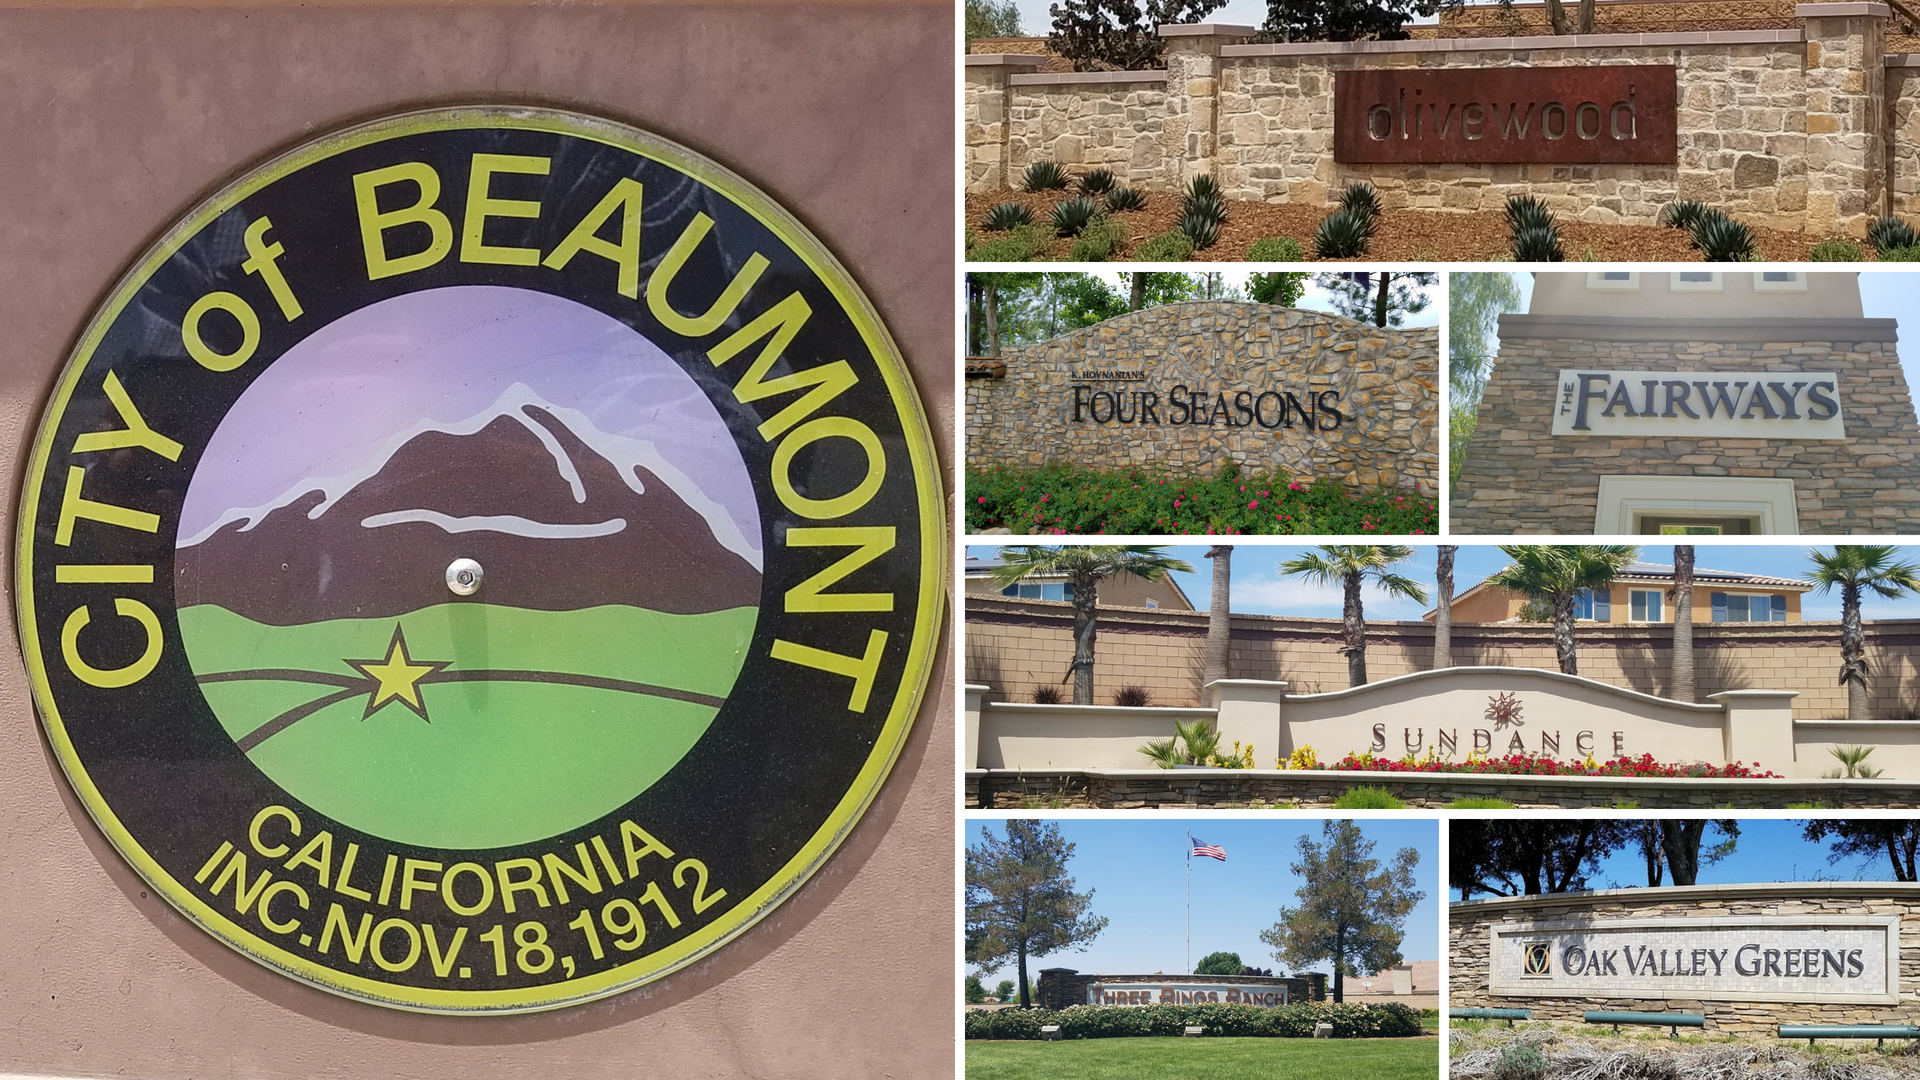 Communities in Beaumont, California